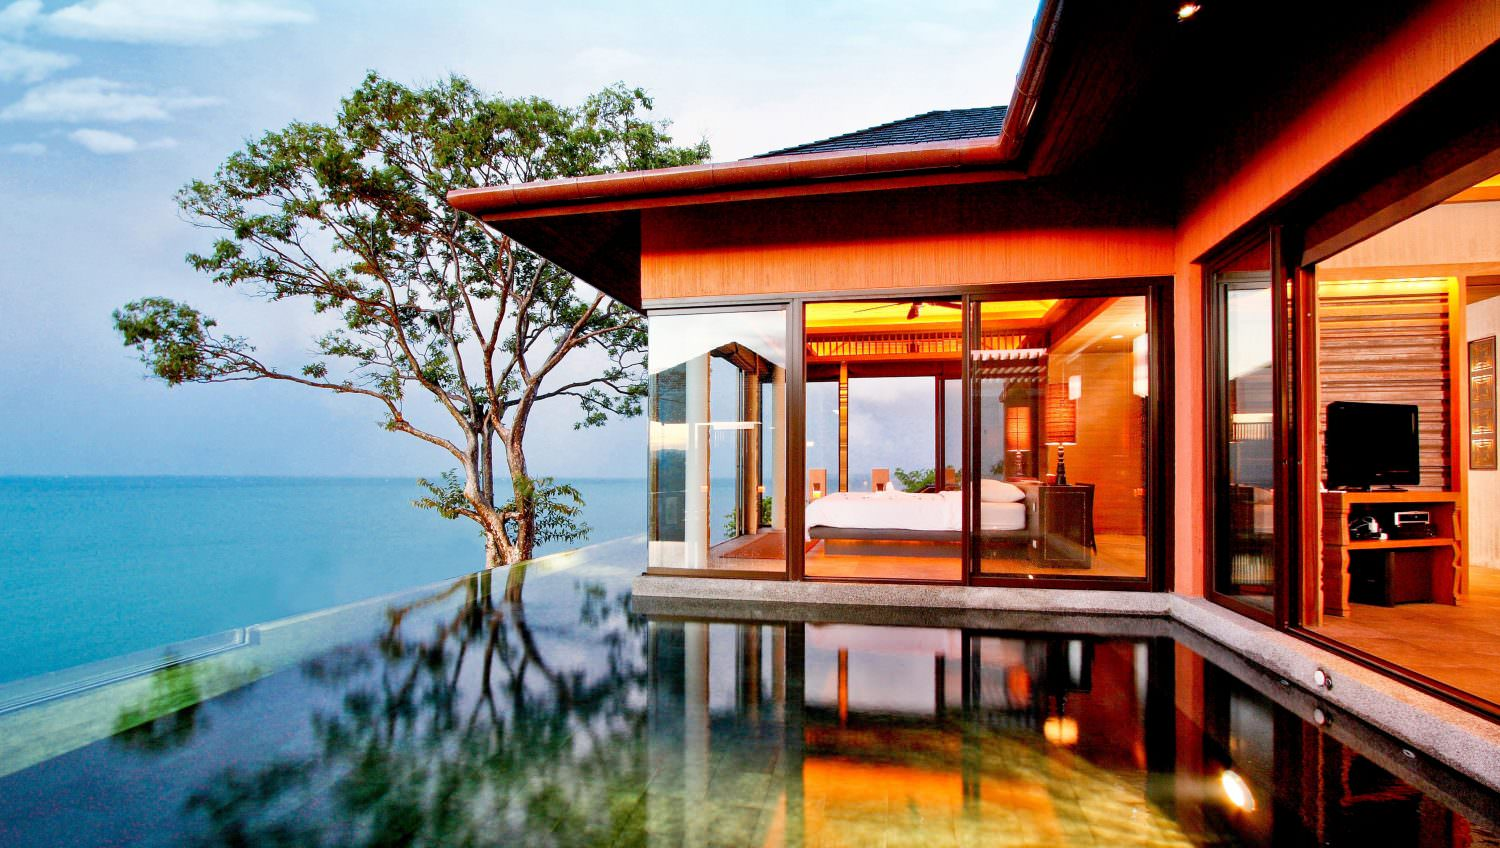 2-One-Bedroom-Luxury-Pool-Villa-Ocean-View-B-Sri-Panwa-Hotel-Phuket-Resort-Spa